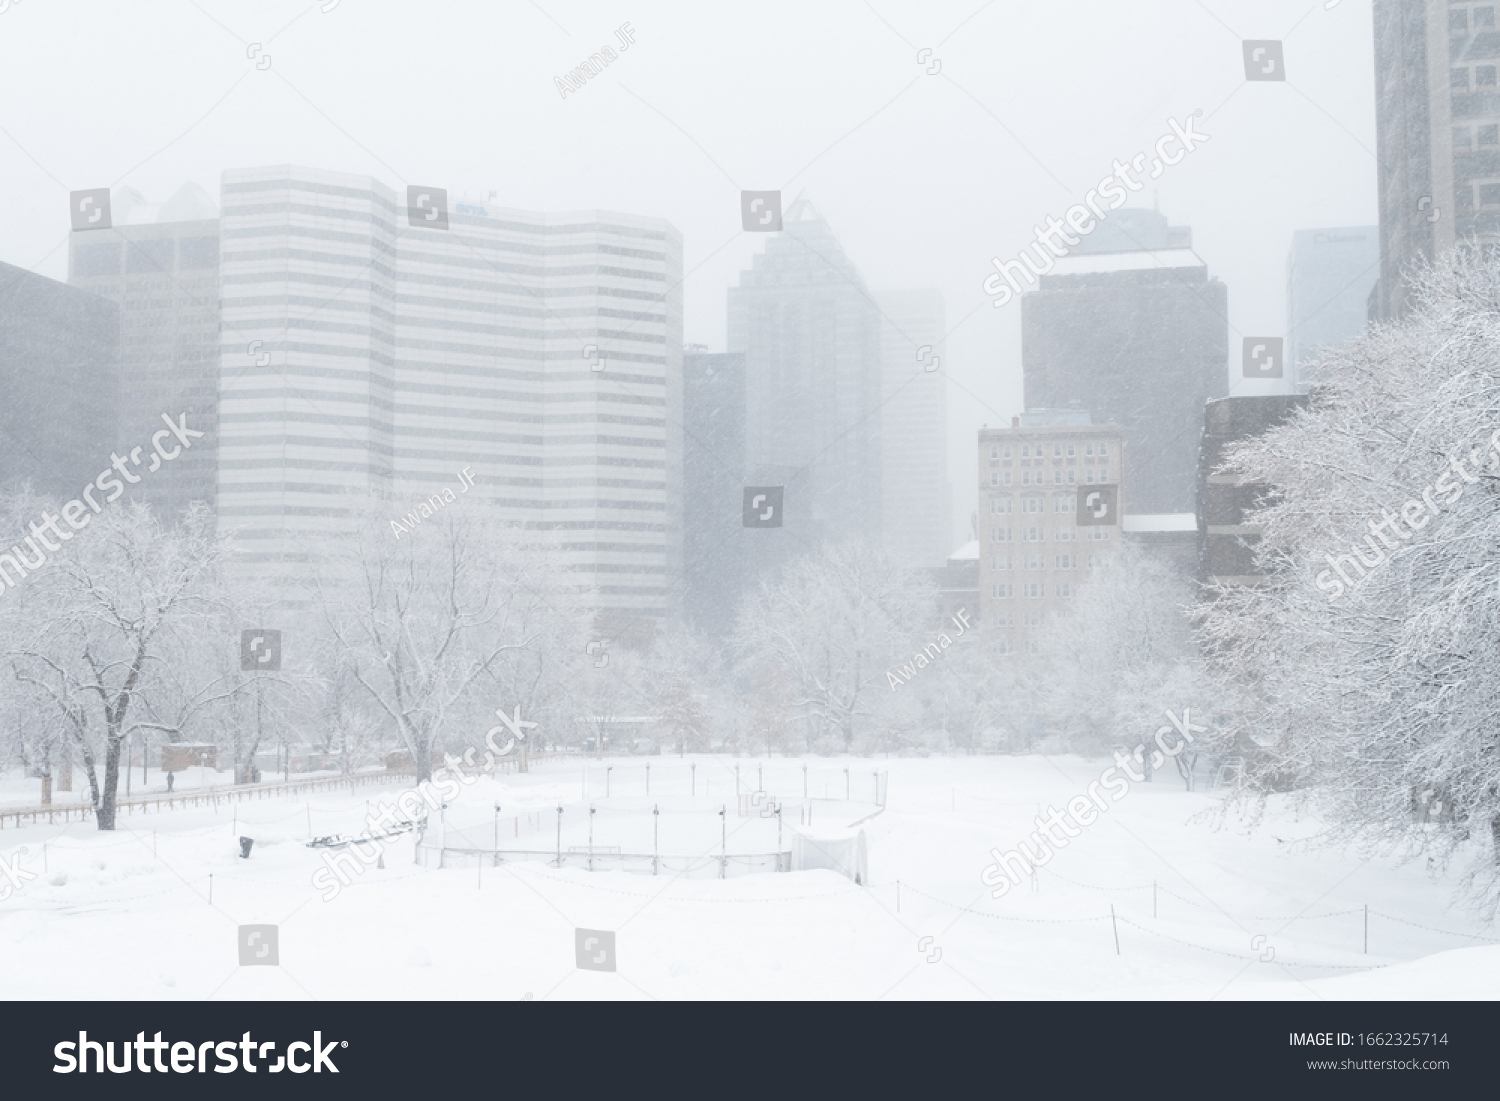 stock-photo-montreal-canada-february-mon